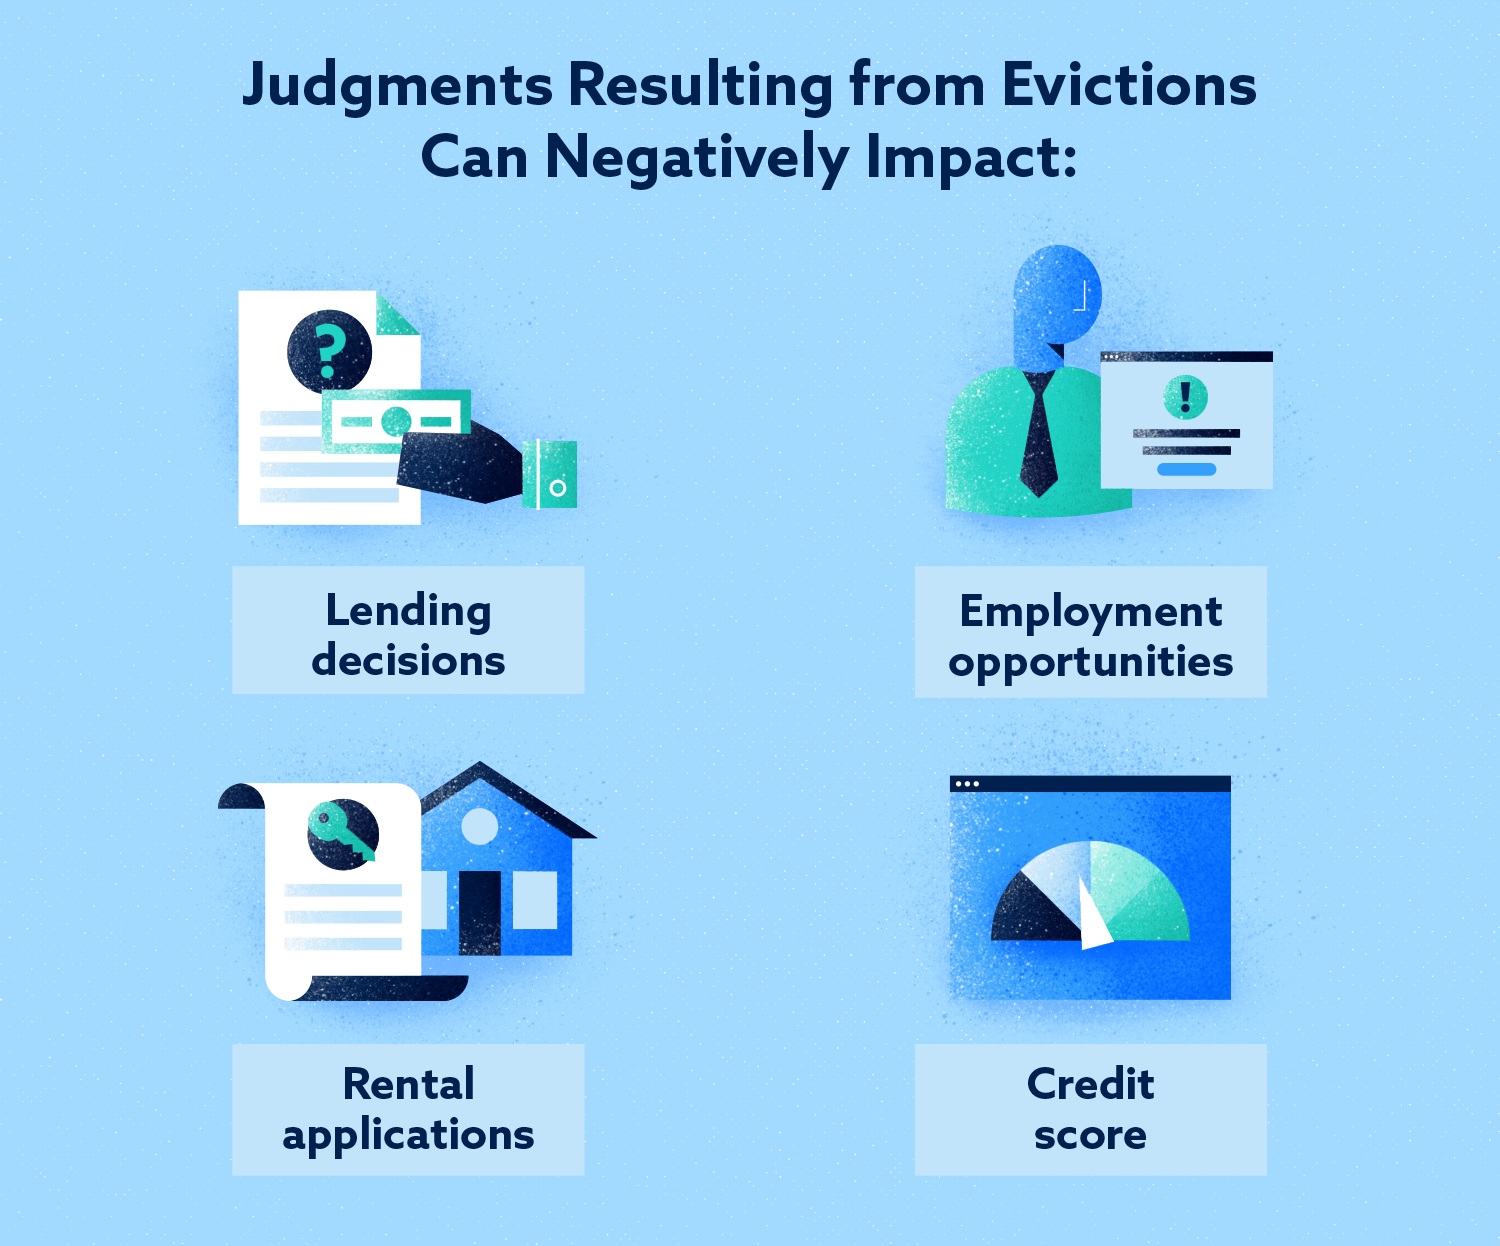 Judgements Resulting from Evictions Can Negatively Impact Image